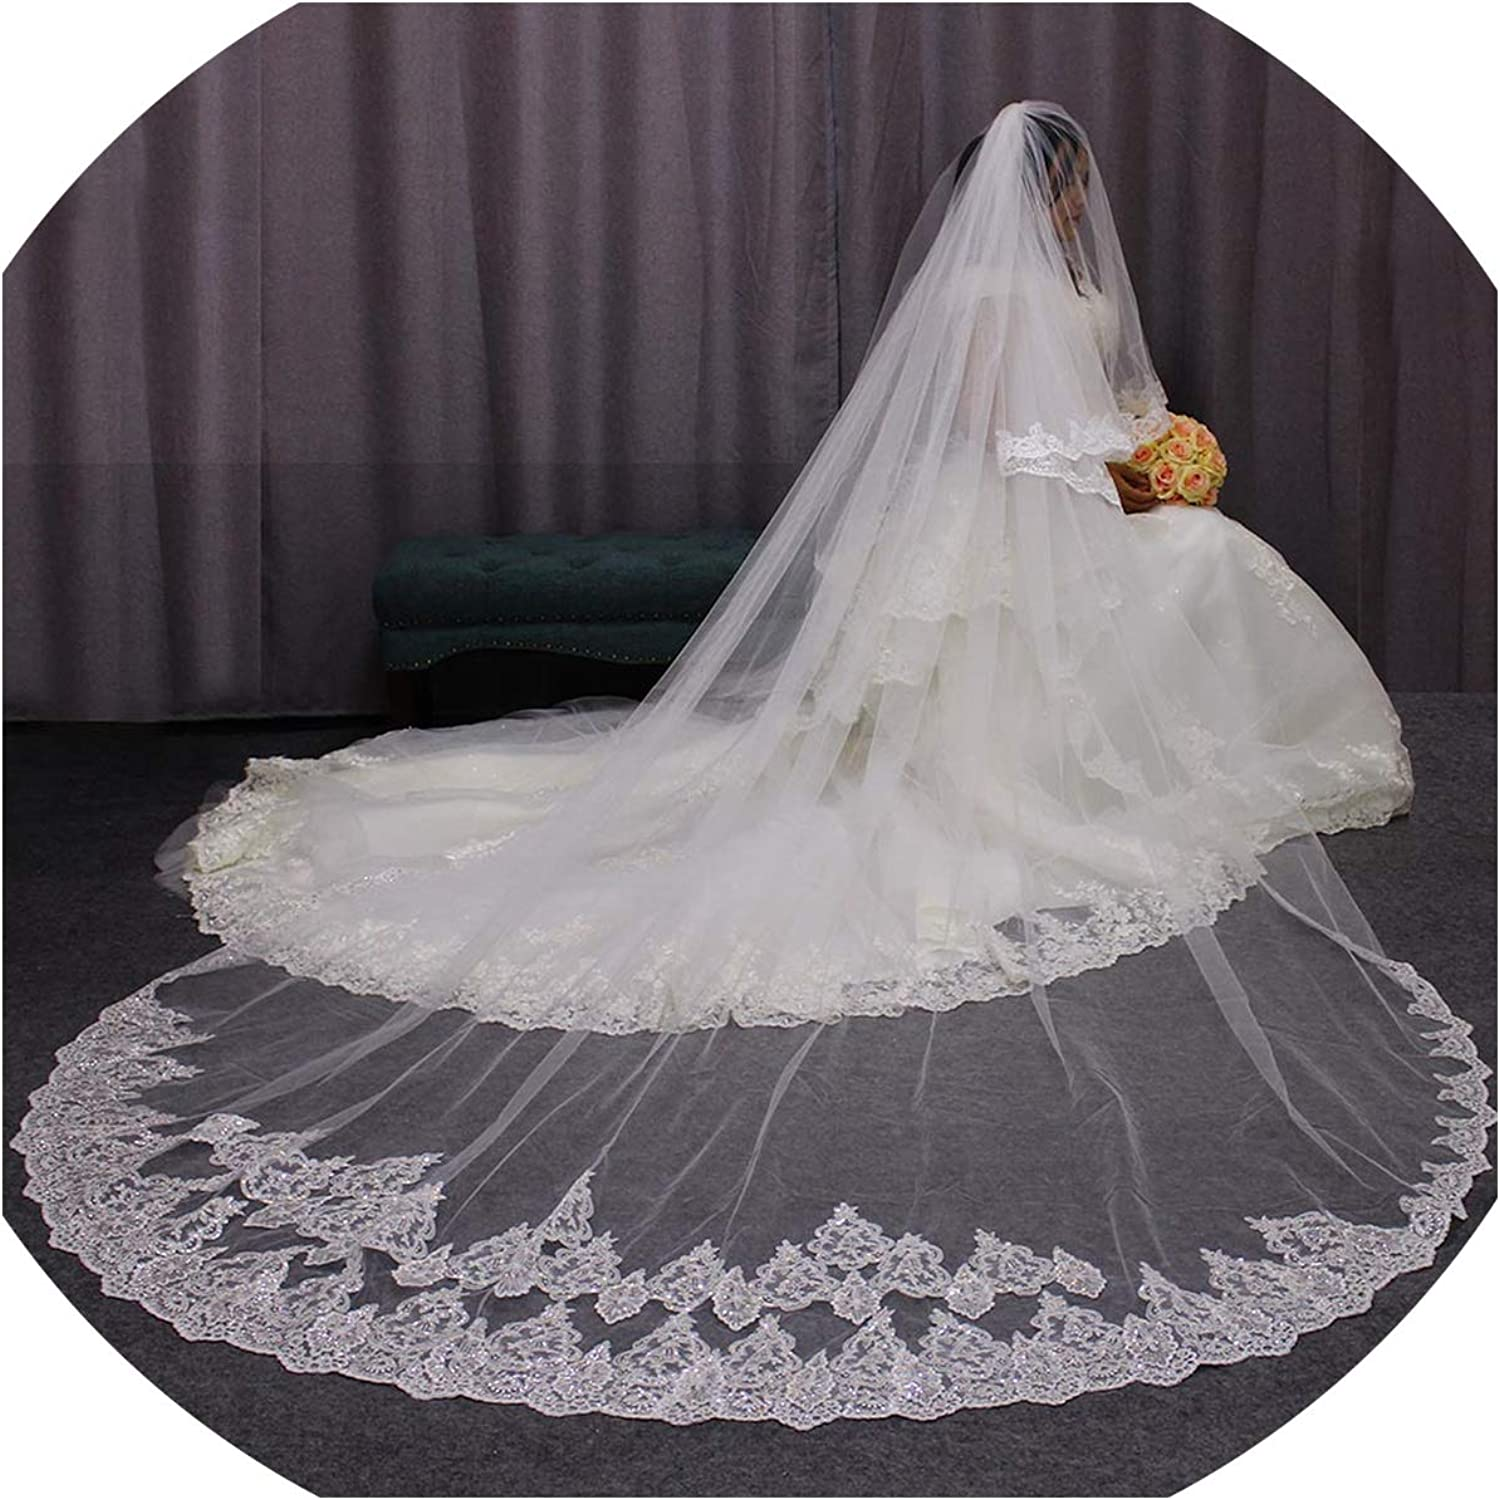 3 Meters Long Wedding Veils 2 Layers Bling Sequins Lace Edge Cathedral Bridal Veil with Comb Velo De Novia,WHITE,300cm